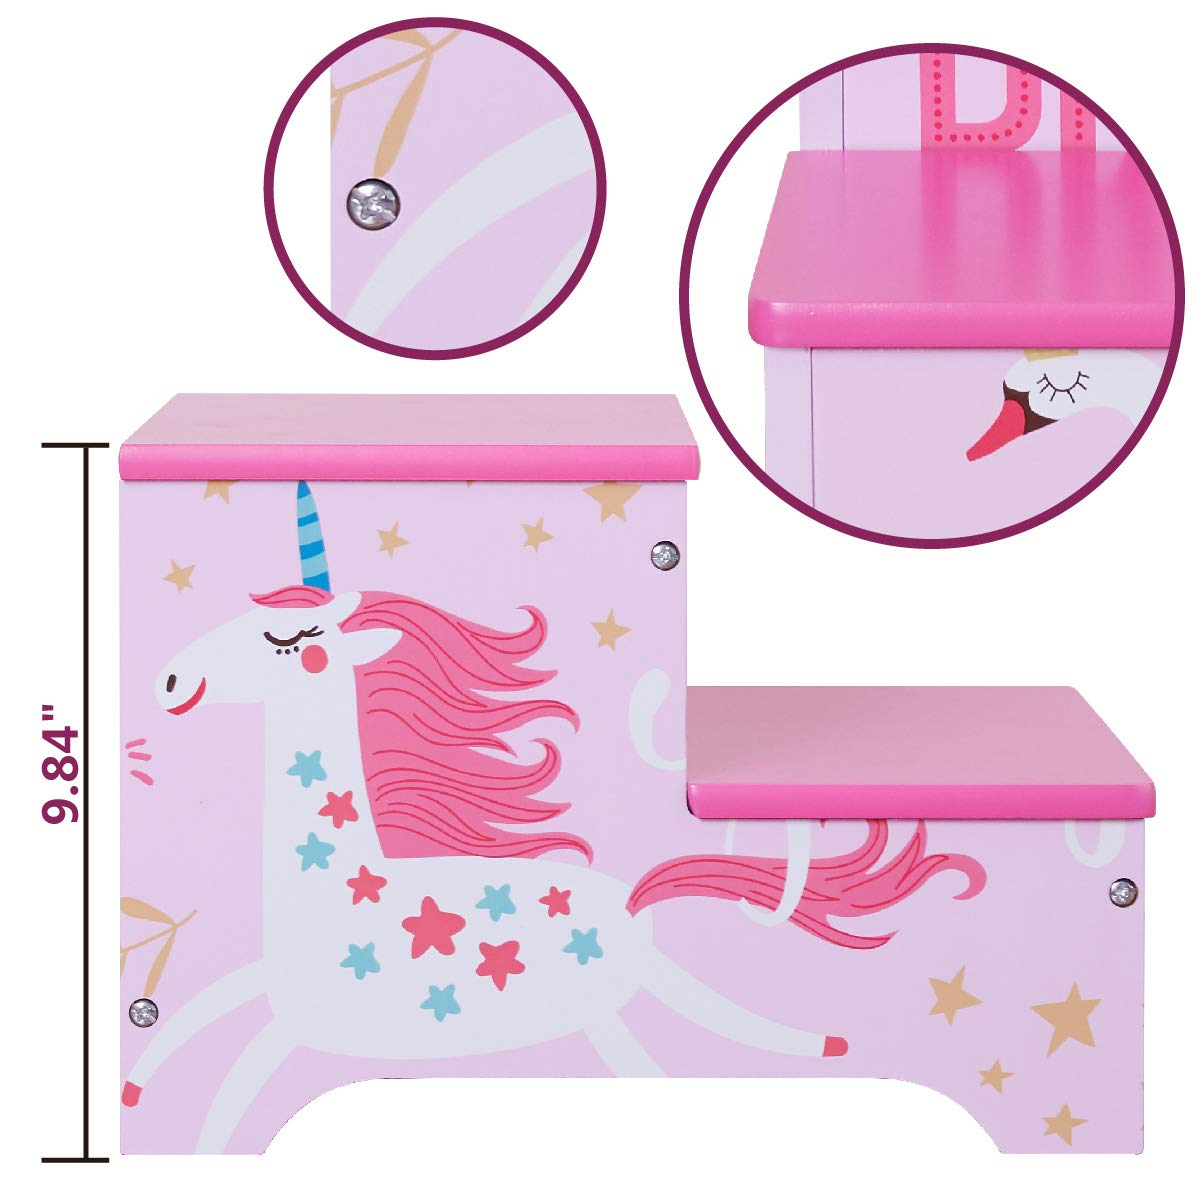 Toffy & Friends Kids Pink Wooden Step Stool with Storage,Children's Furniture Two-Step Stool Environmentally Friendly UV Paint Non-Toxic Lead Free (1 Piece)